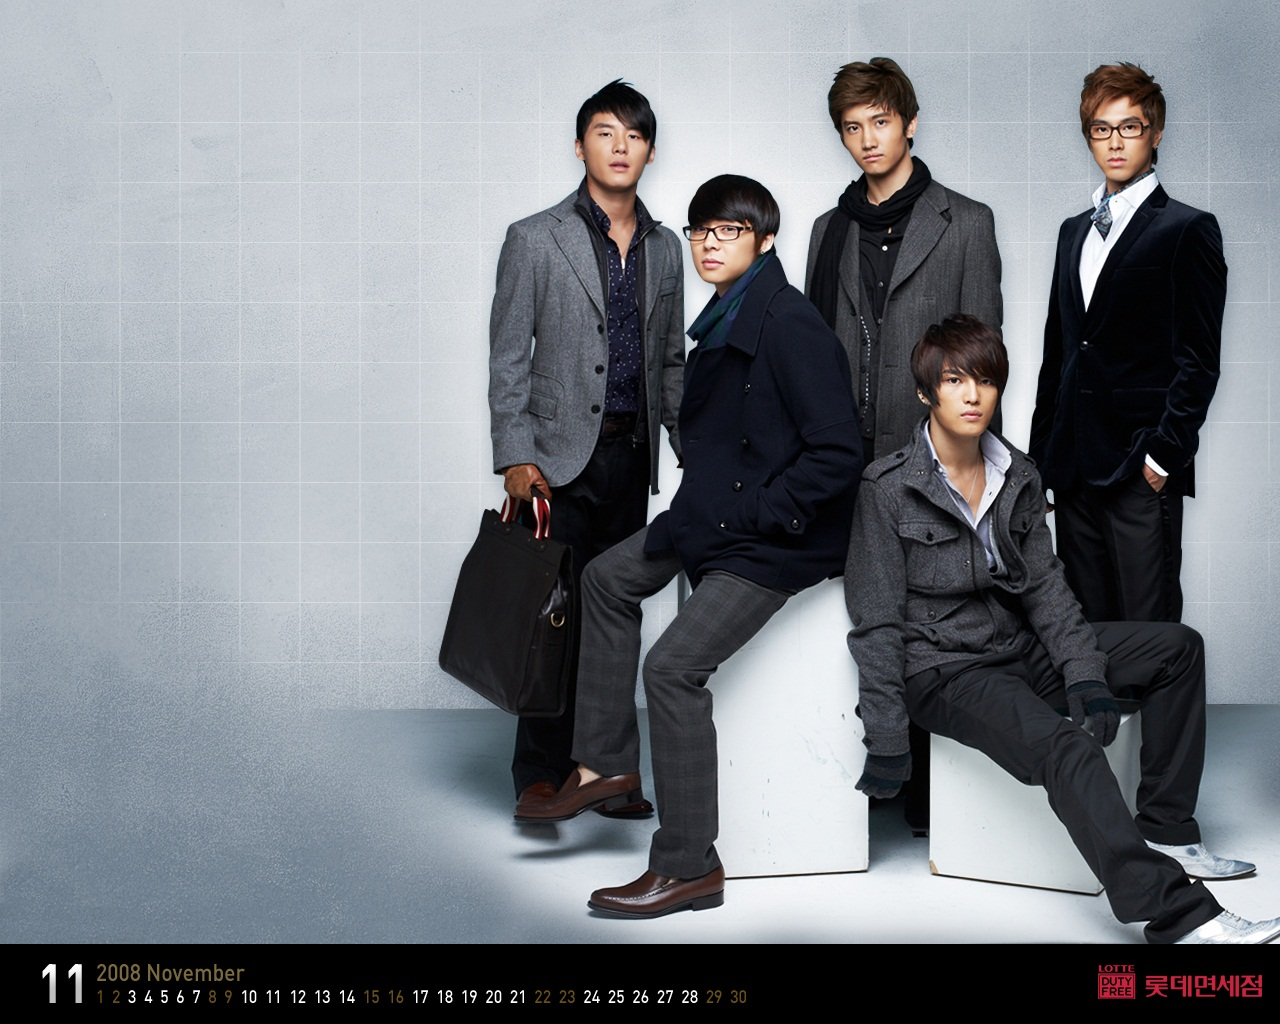 tvxq dbsk wallpaper 동방 신기 東方神起 6 tvxq dbsk wallpaper